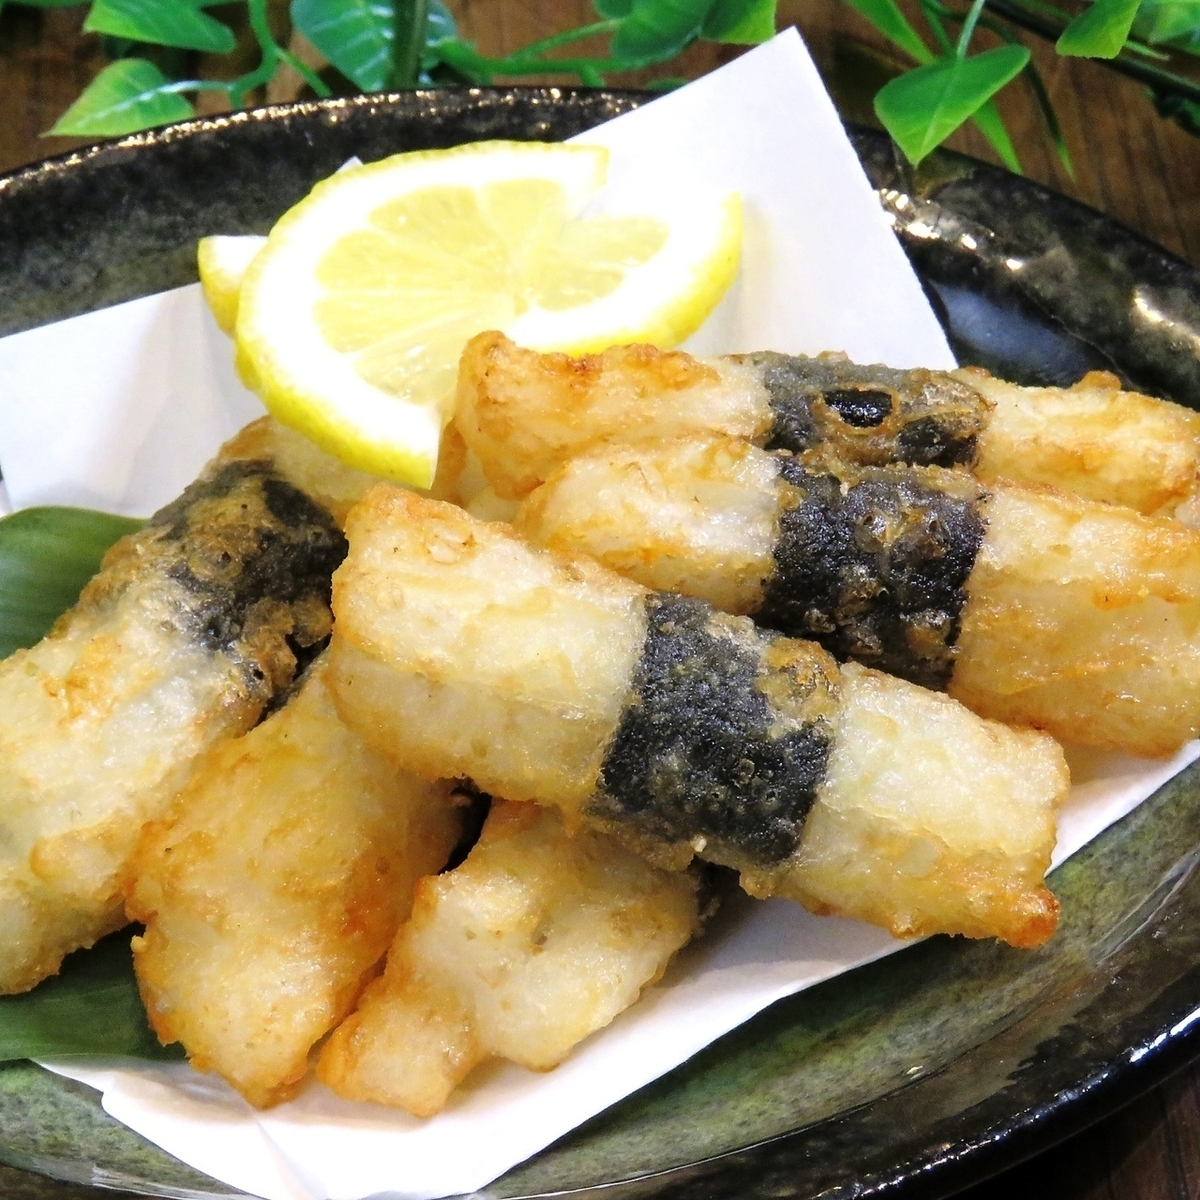 Deep-fried yam with yam